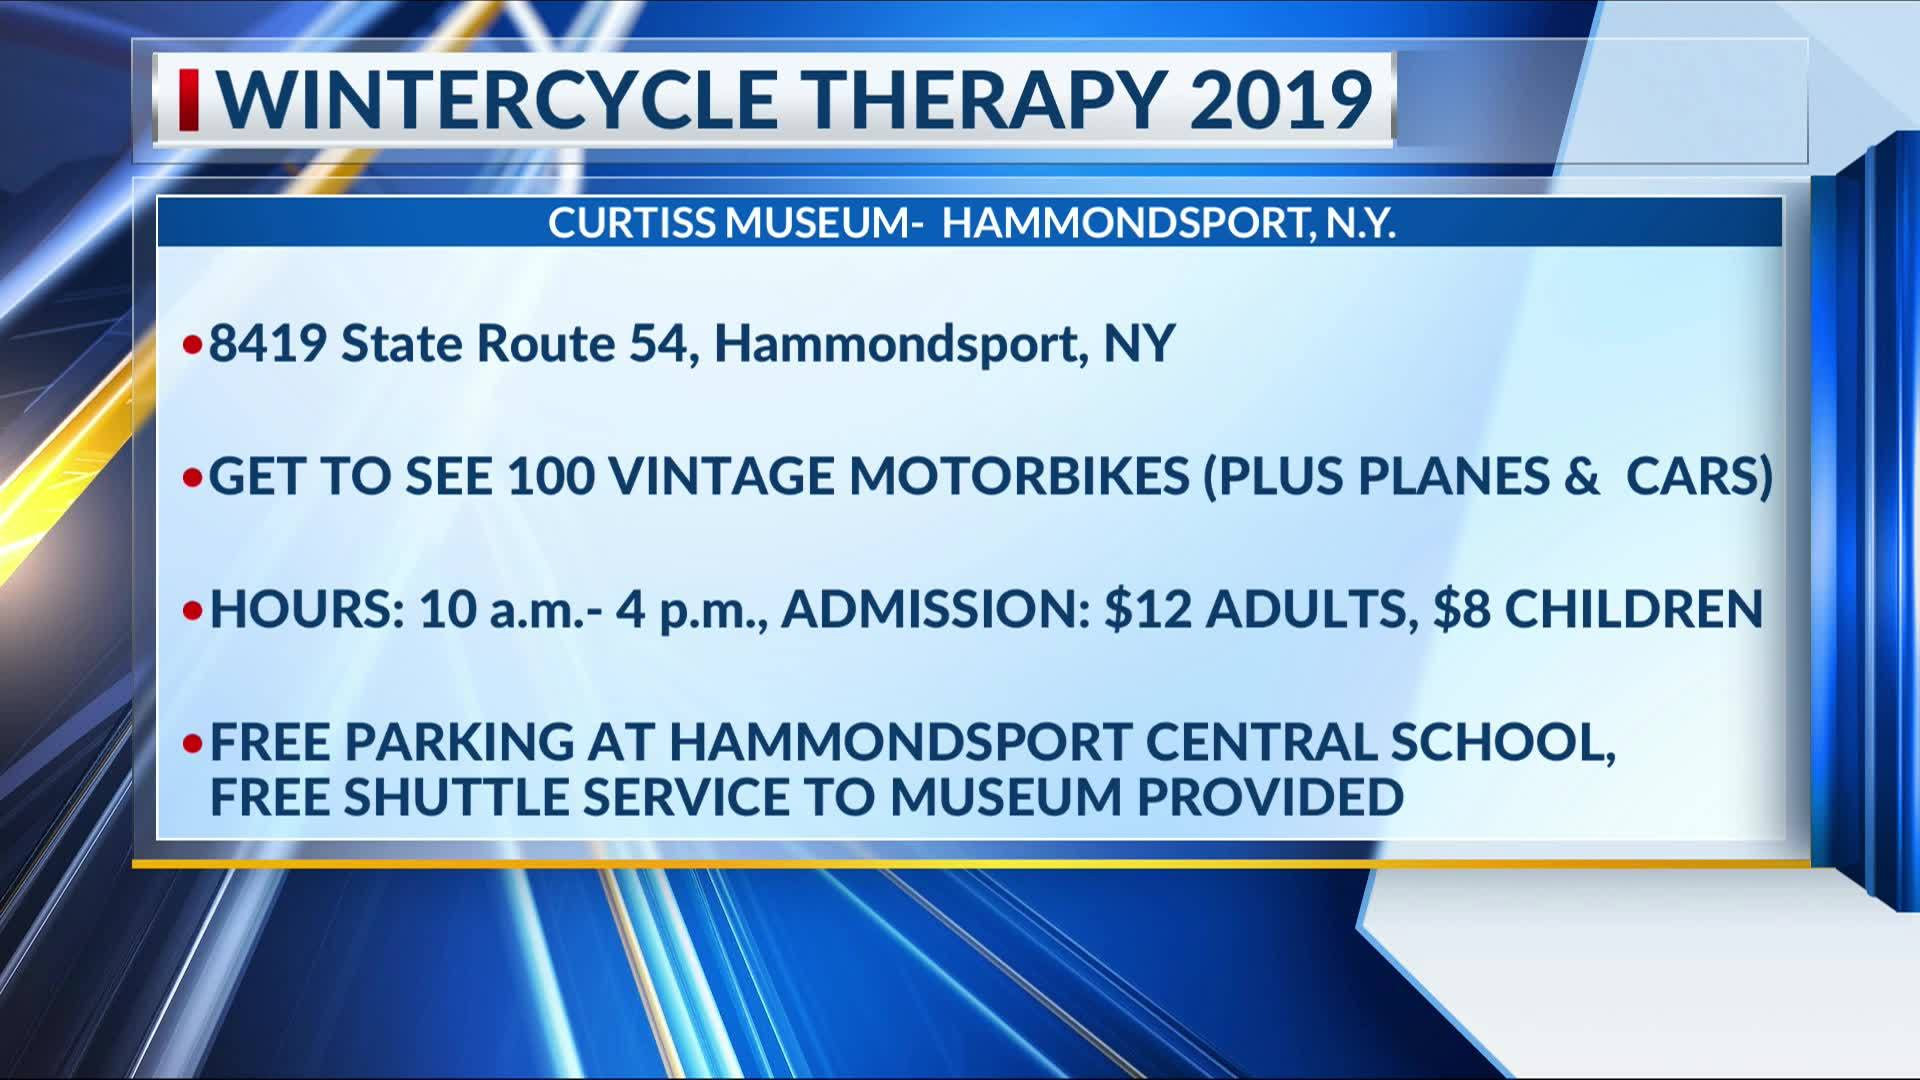 wintercycle_therapy_2019_preview_8_20190224050313